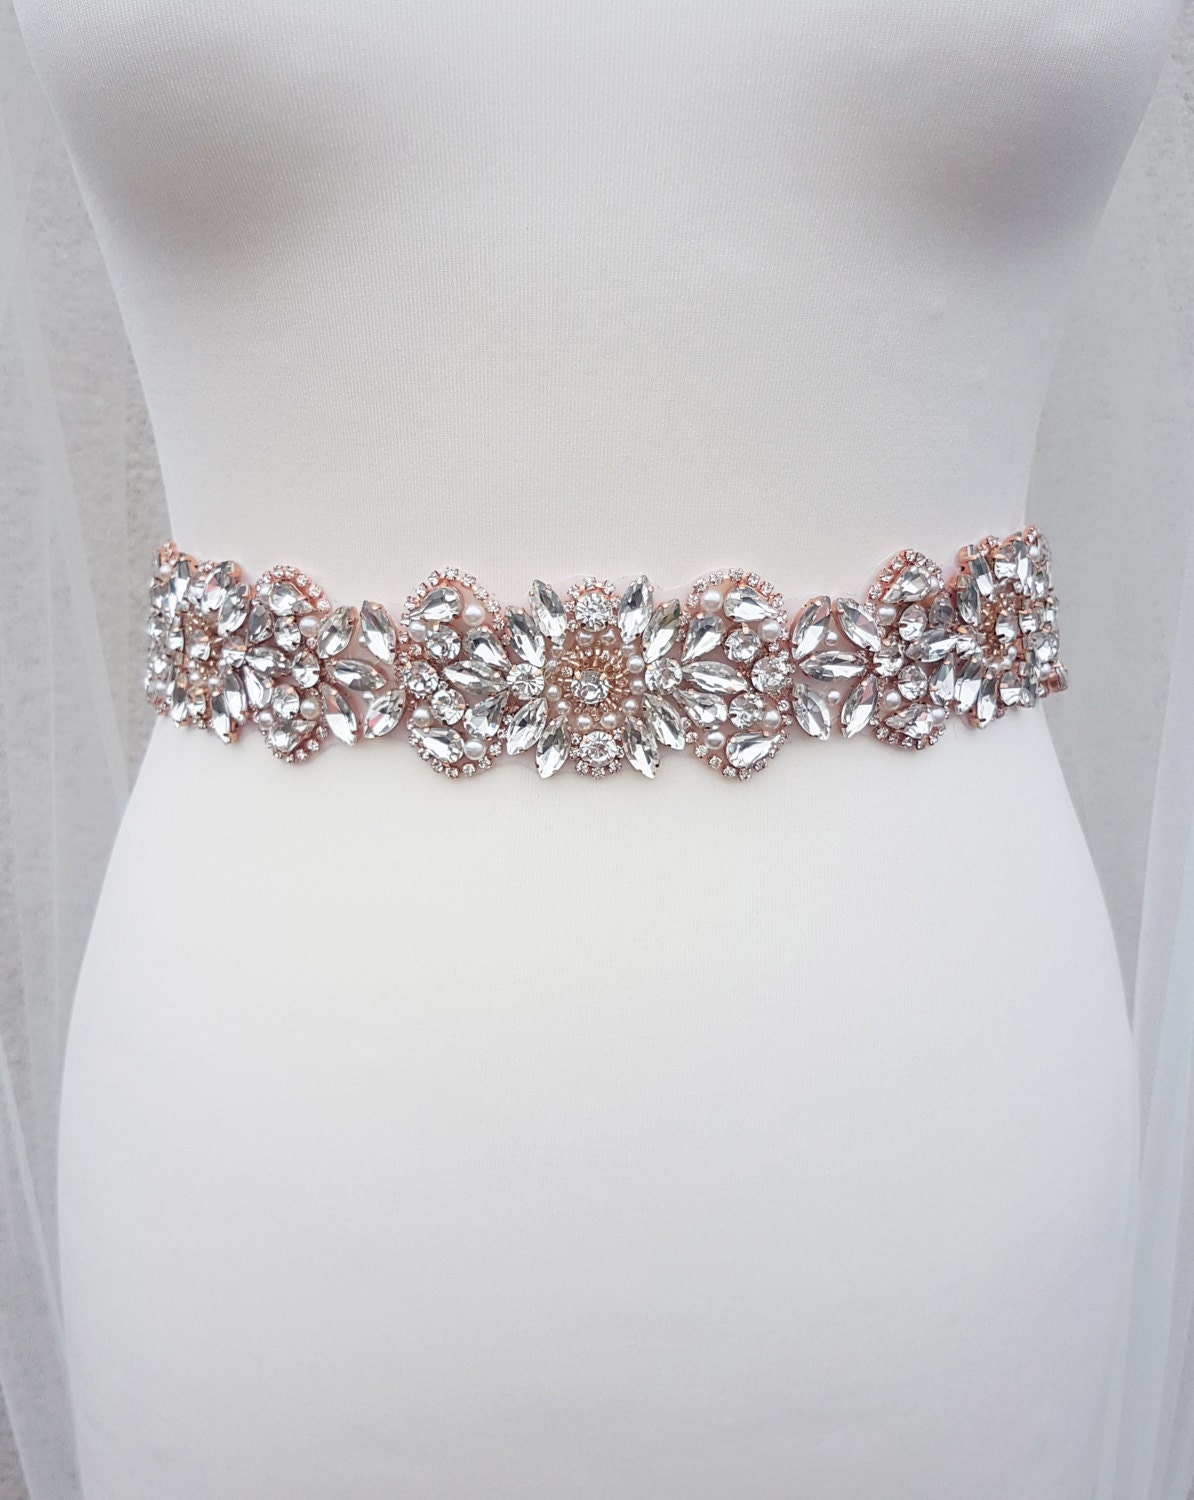 Rose gold belt rose gold bridal belt rose gold rose gold